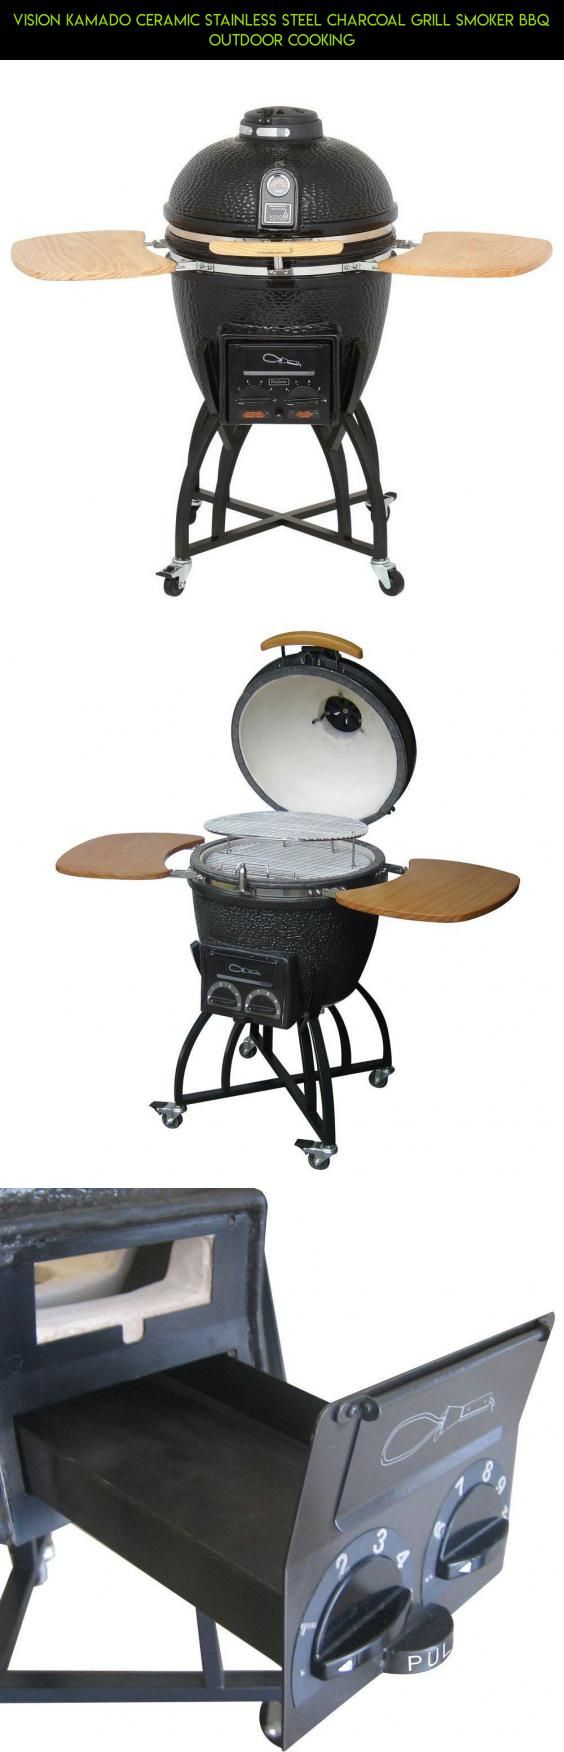 Vision Kamado Ceramic Stainless Steel Charcoal Grill Smoker BBQ Outdoor Cooking #fpv #kamado #camera #technology #racing #gadgets #kit #products #grills #drone #parts #vision #tech #shopping #plans